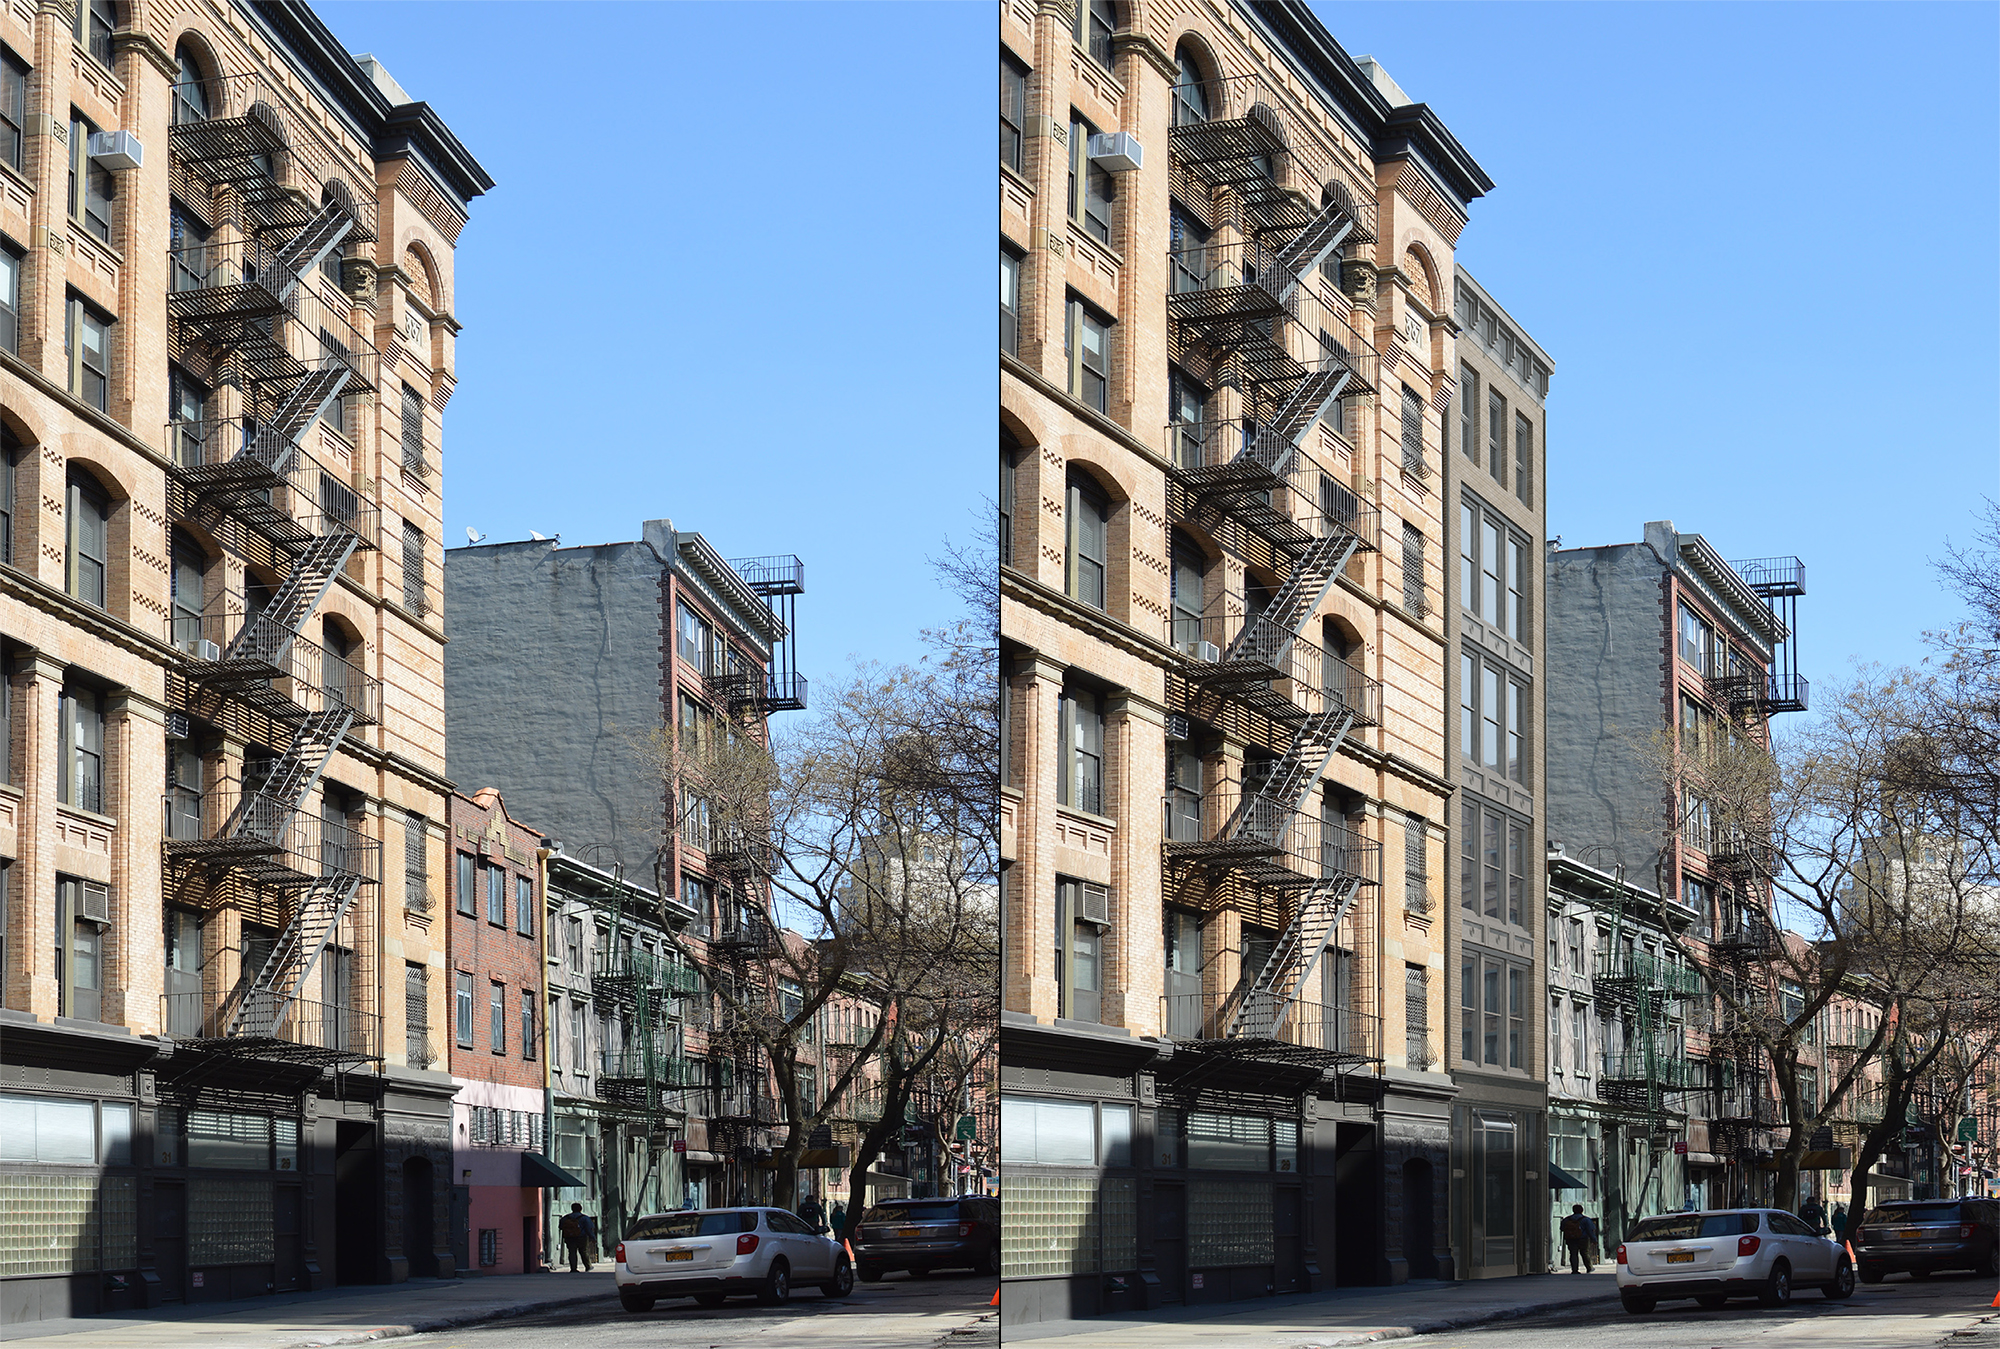 25 Bleecker Street, existing and proposed conditions.